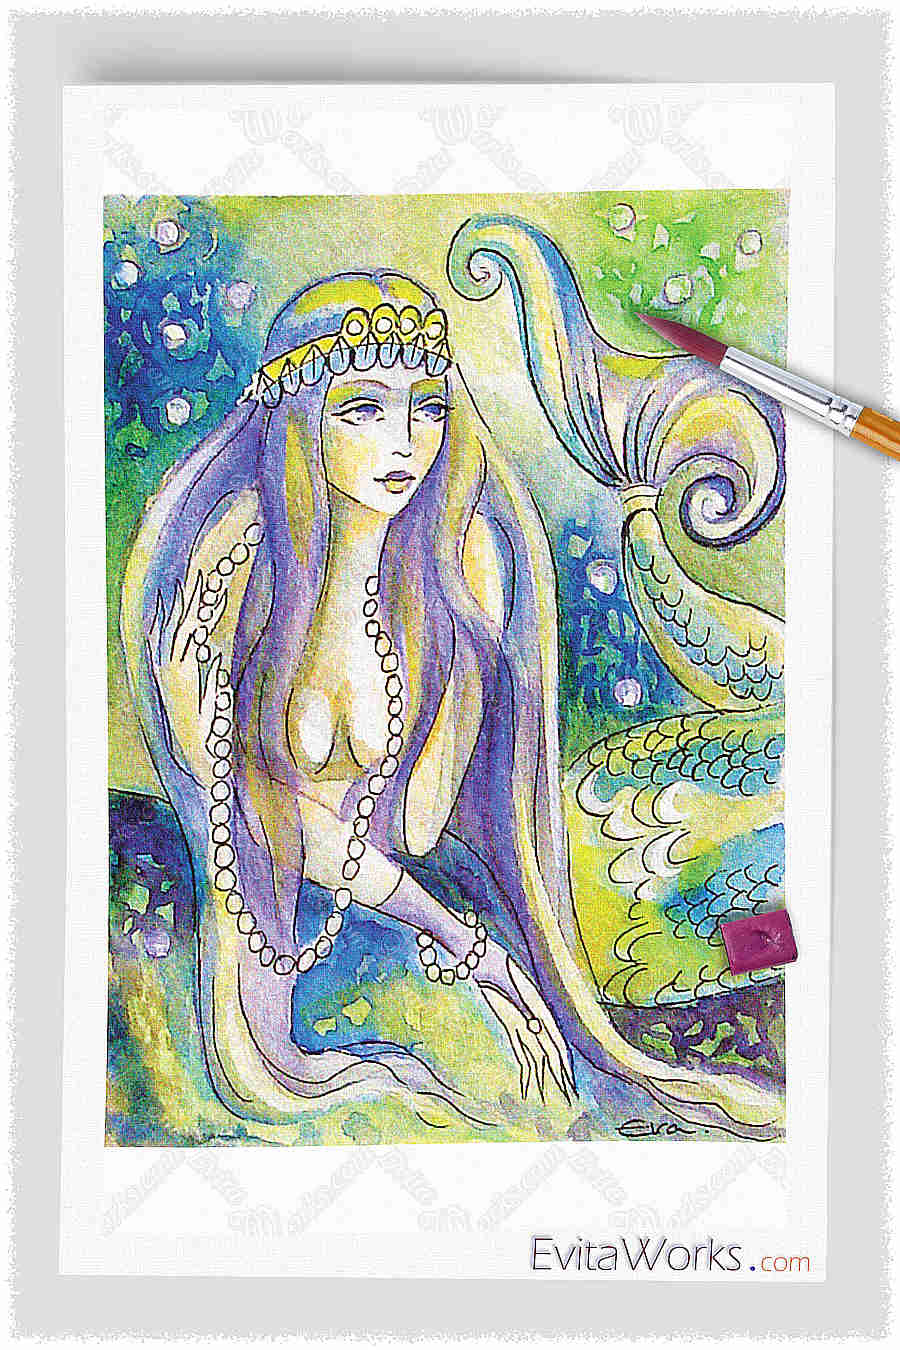 Mermaid 14 ~ EvitaWorks